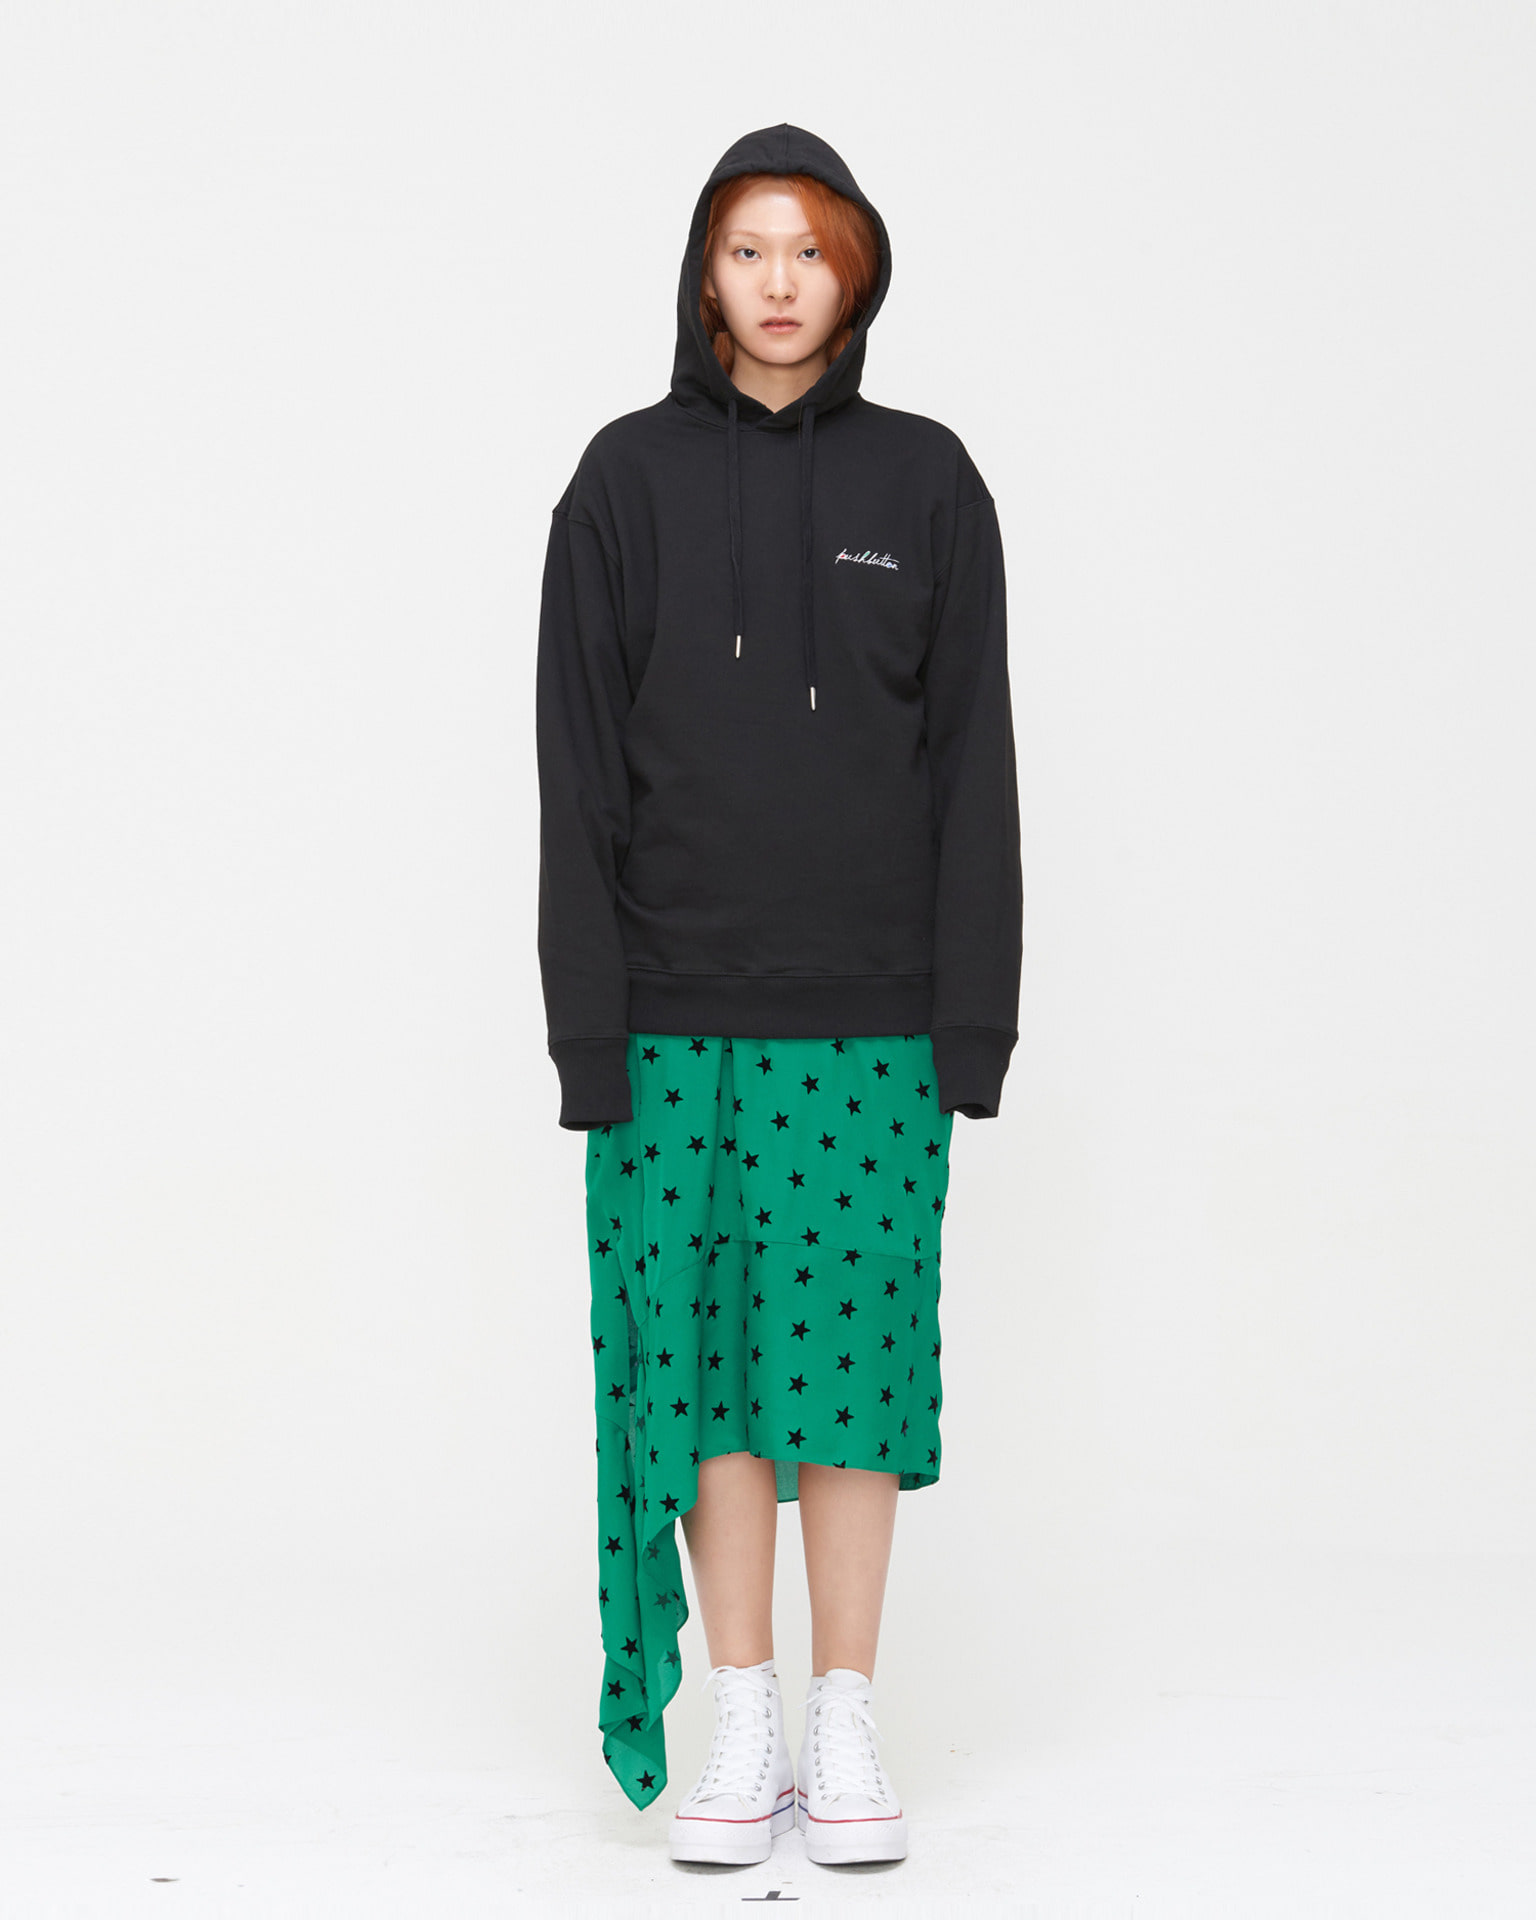 PUSHBUTTON NEEDLEPOINT SWEAT HOODY